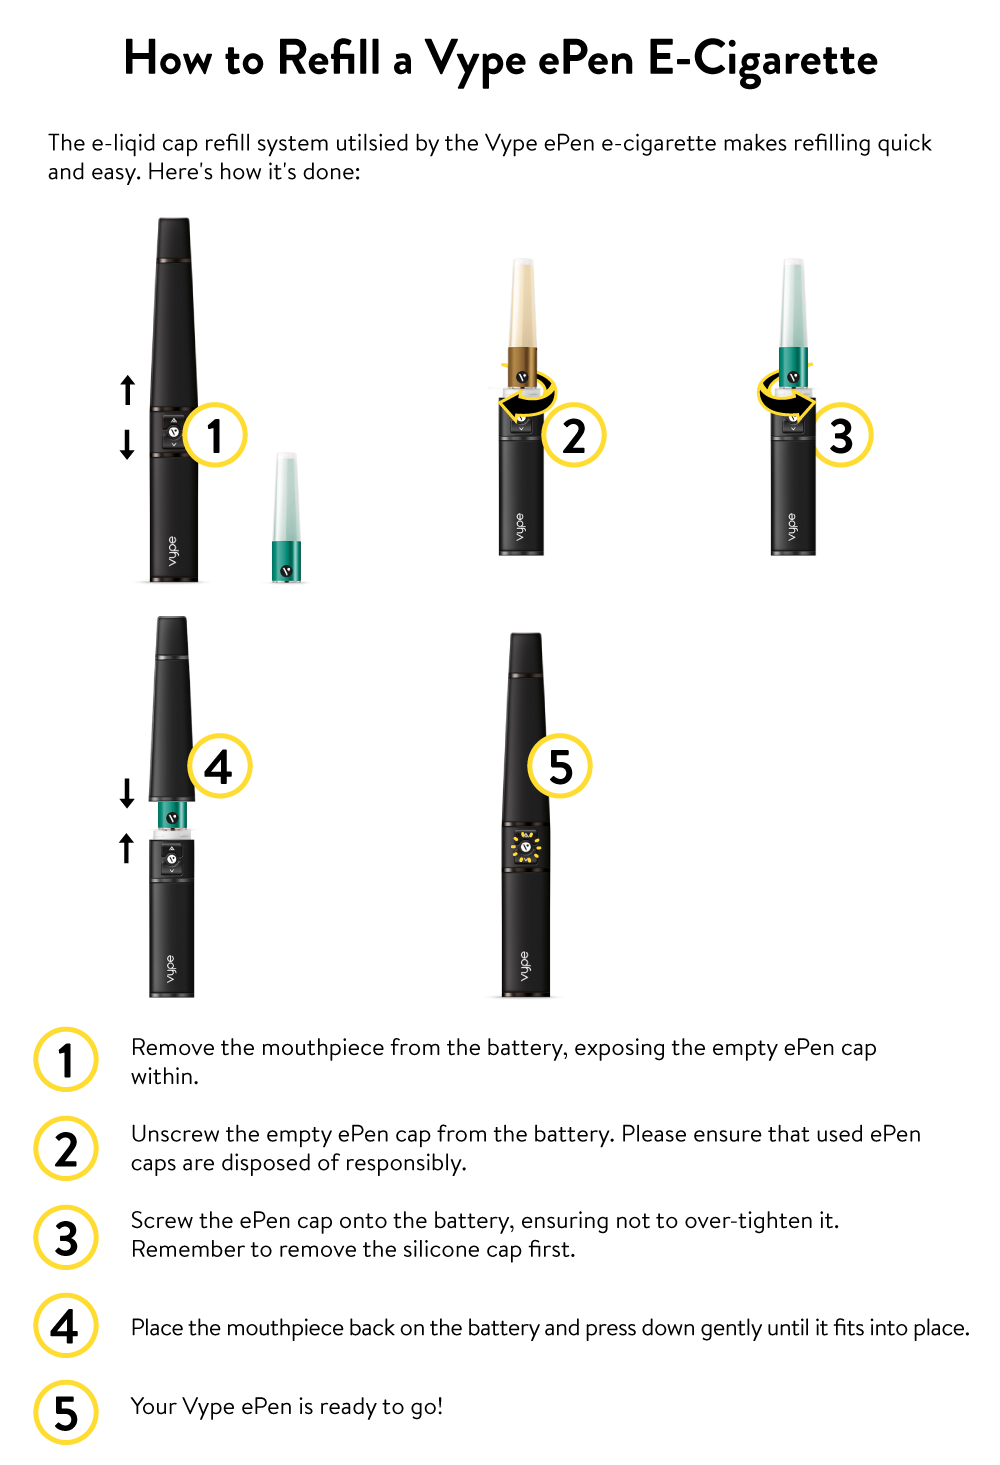 How To Refill The Vype ePen E-Cigarette